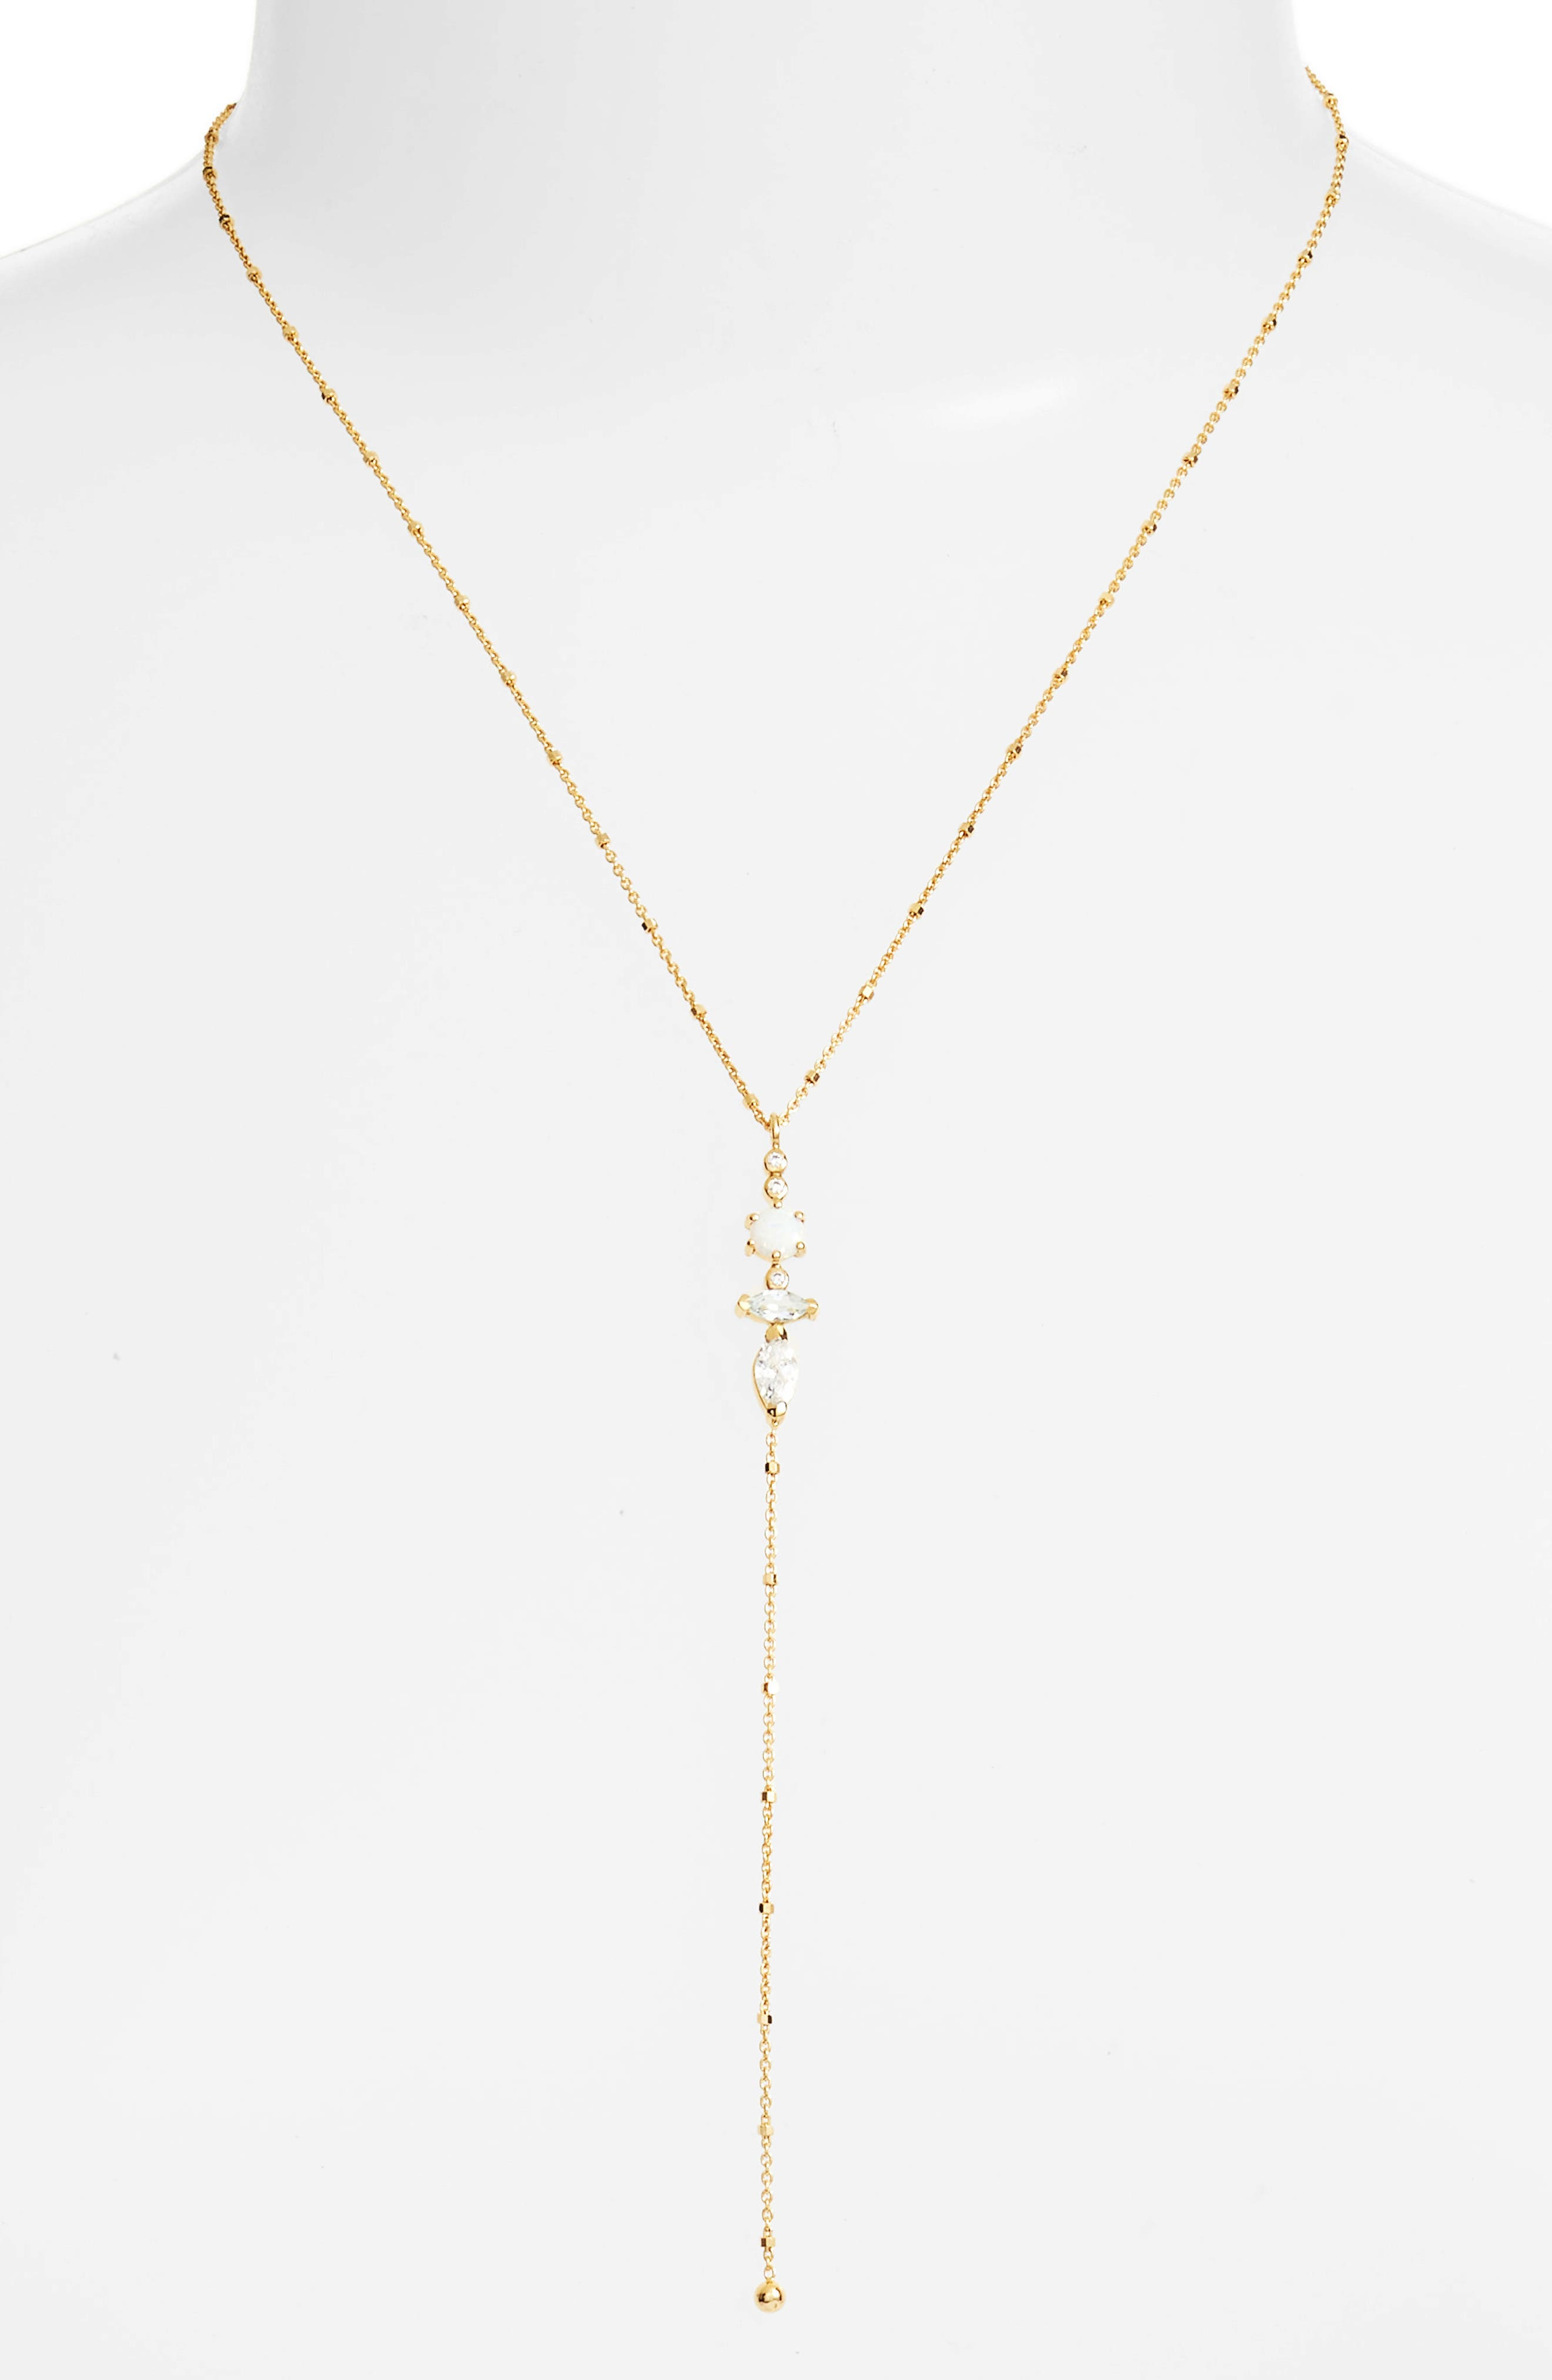 Sydney Multi-Stone Lariat Necklace,                         Main,                         color, Gold